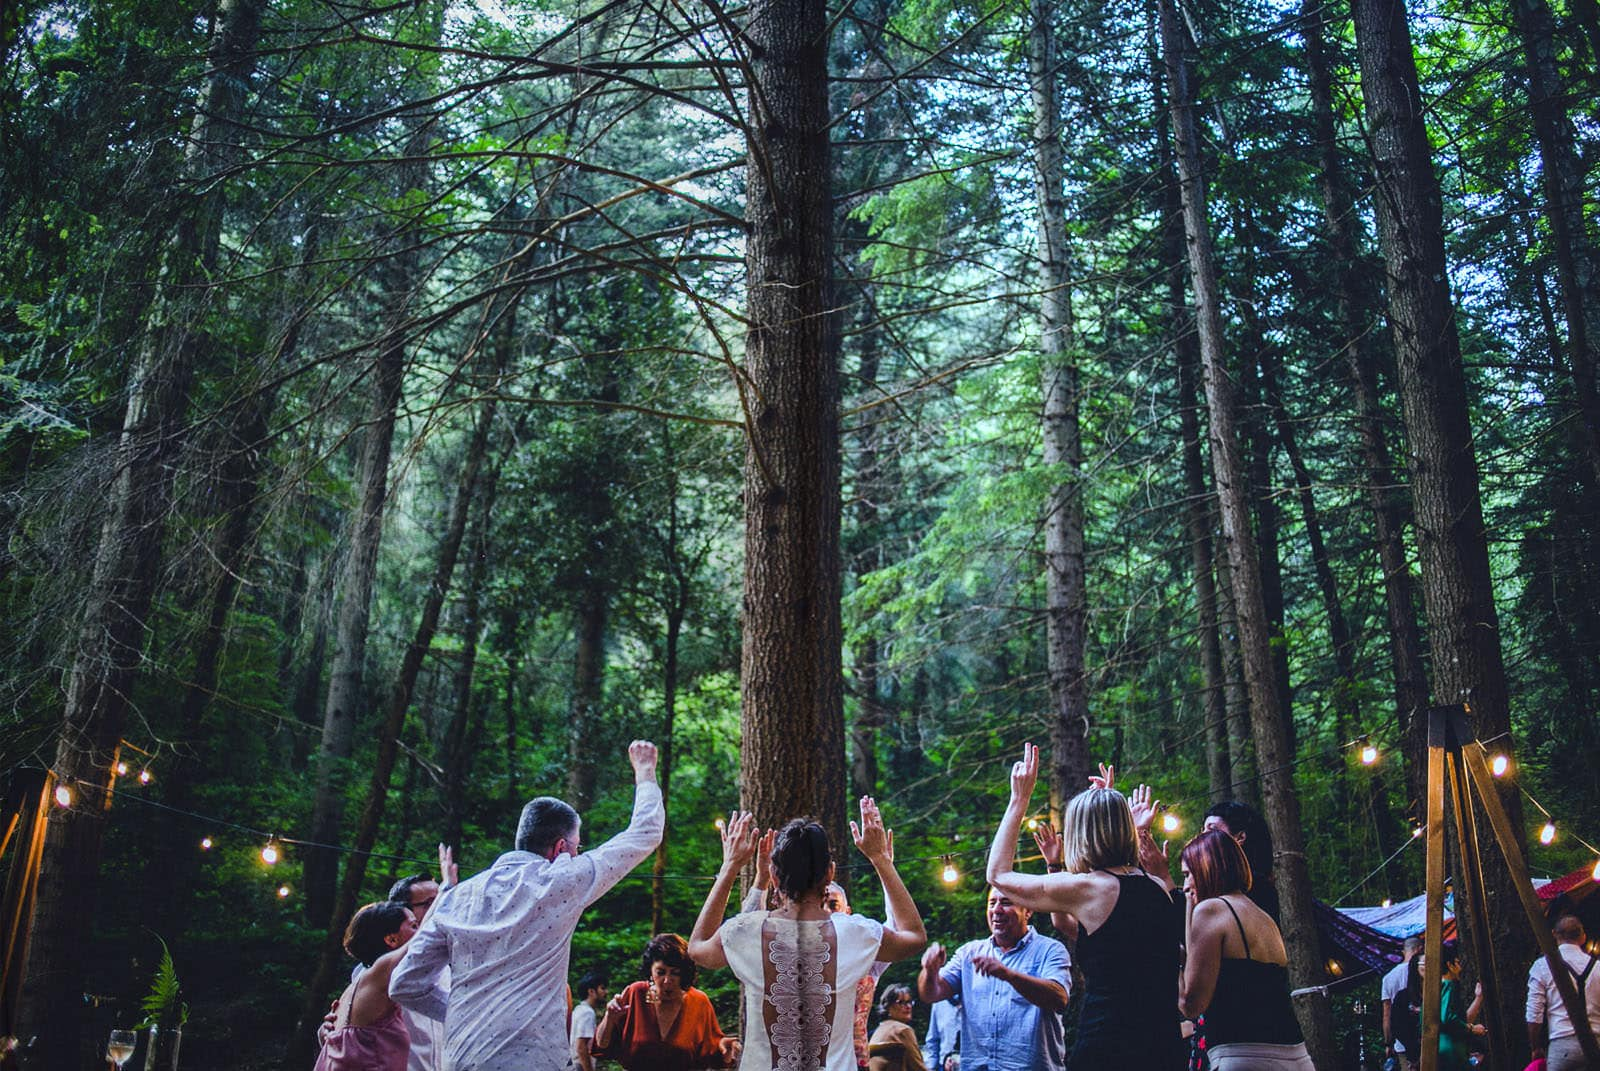 people dancing in the forest